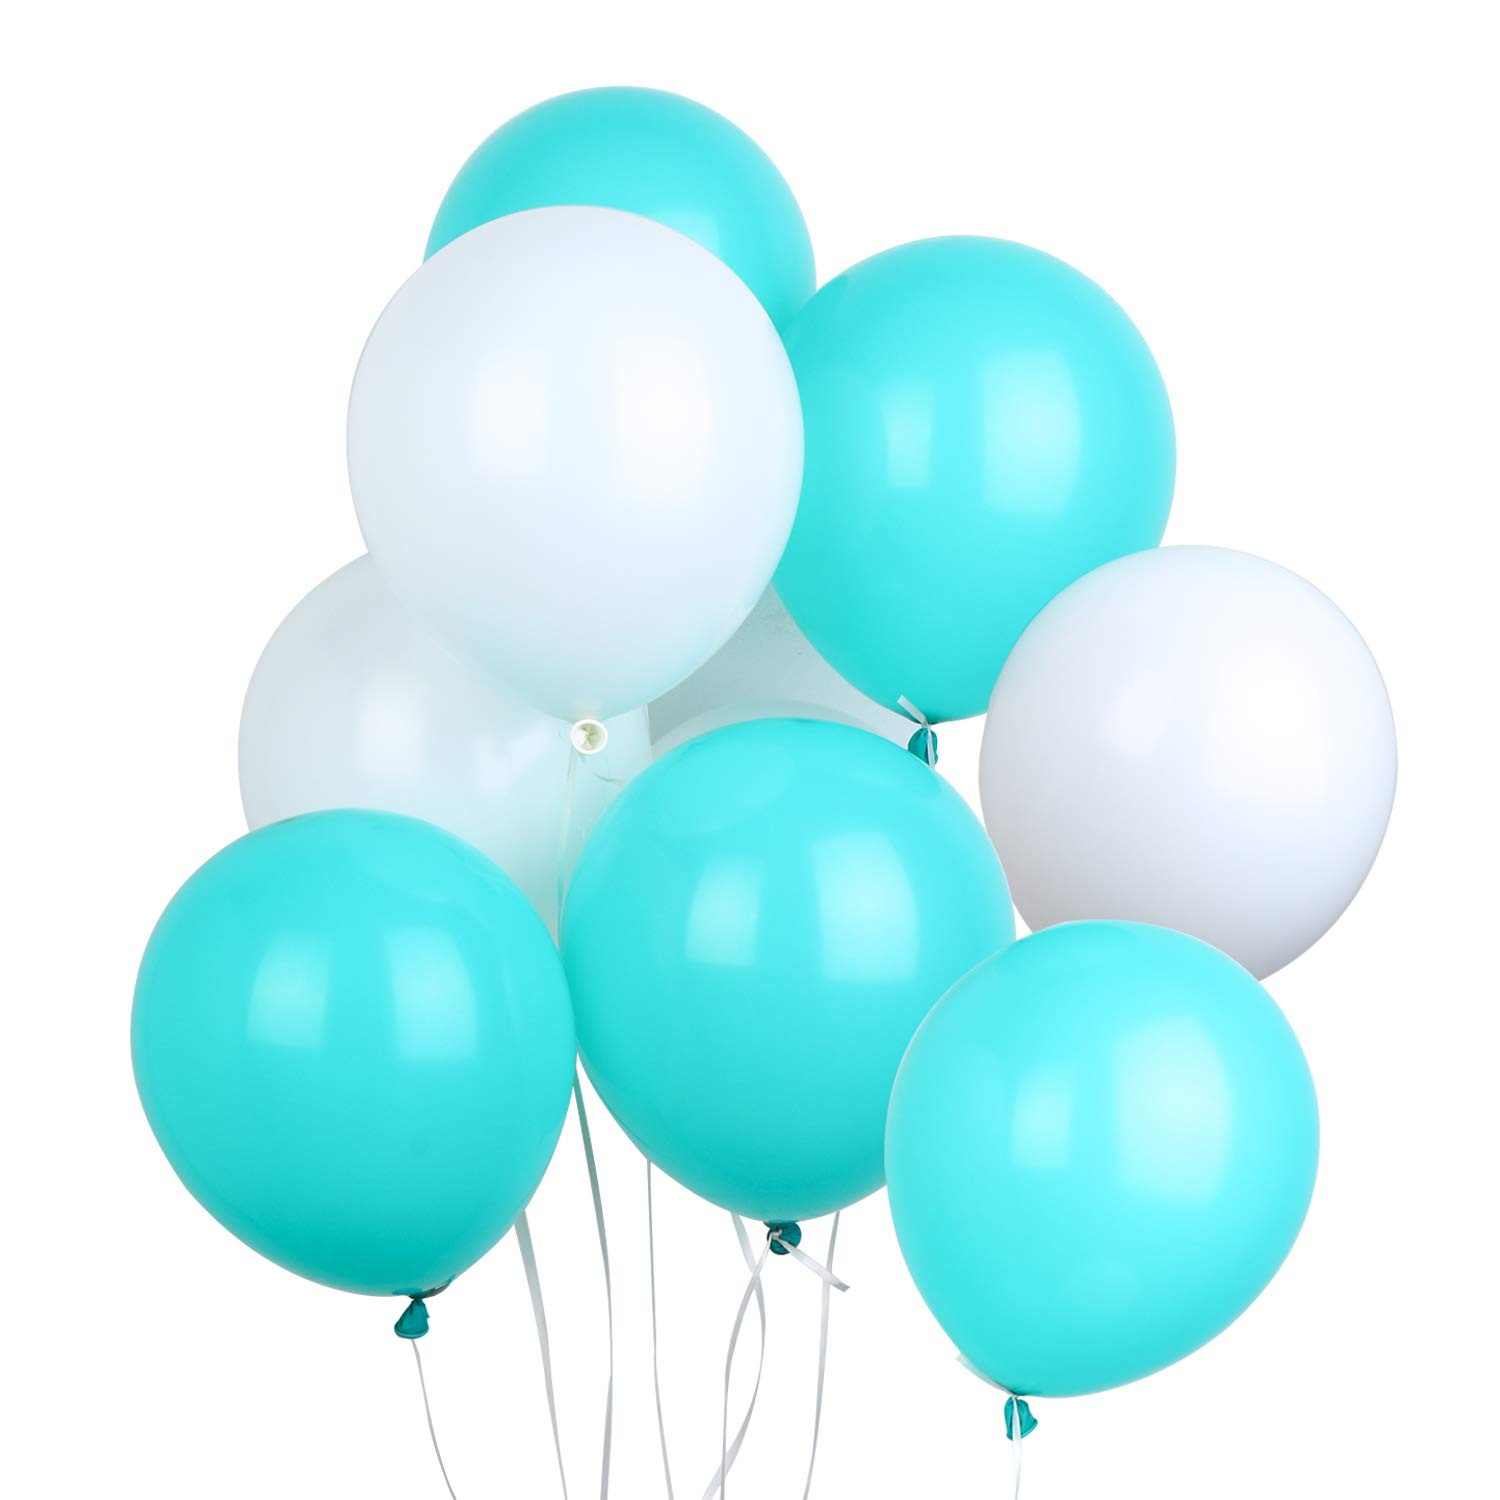 LAttLiv PartyWoo Balloons 100 Pack 12 Inch White & Tiffany Blue Balloons + 25m Free Ribbon for Wedding Decorations Birthday Decoration Baby Shower Kids Party Supplies,3.2g